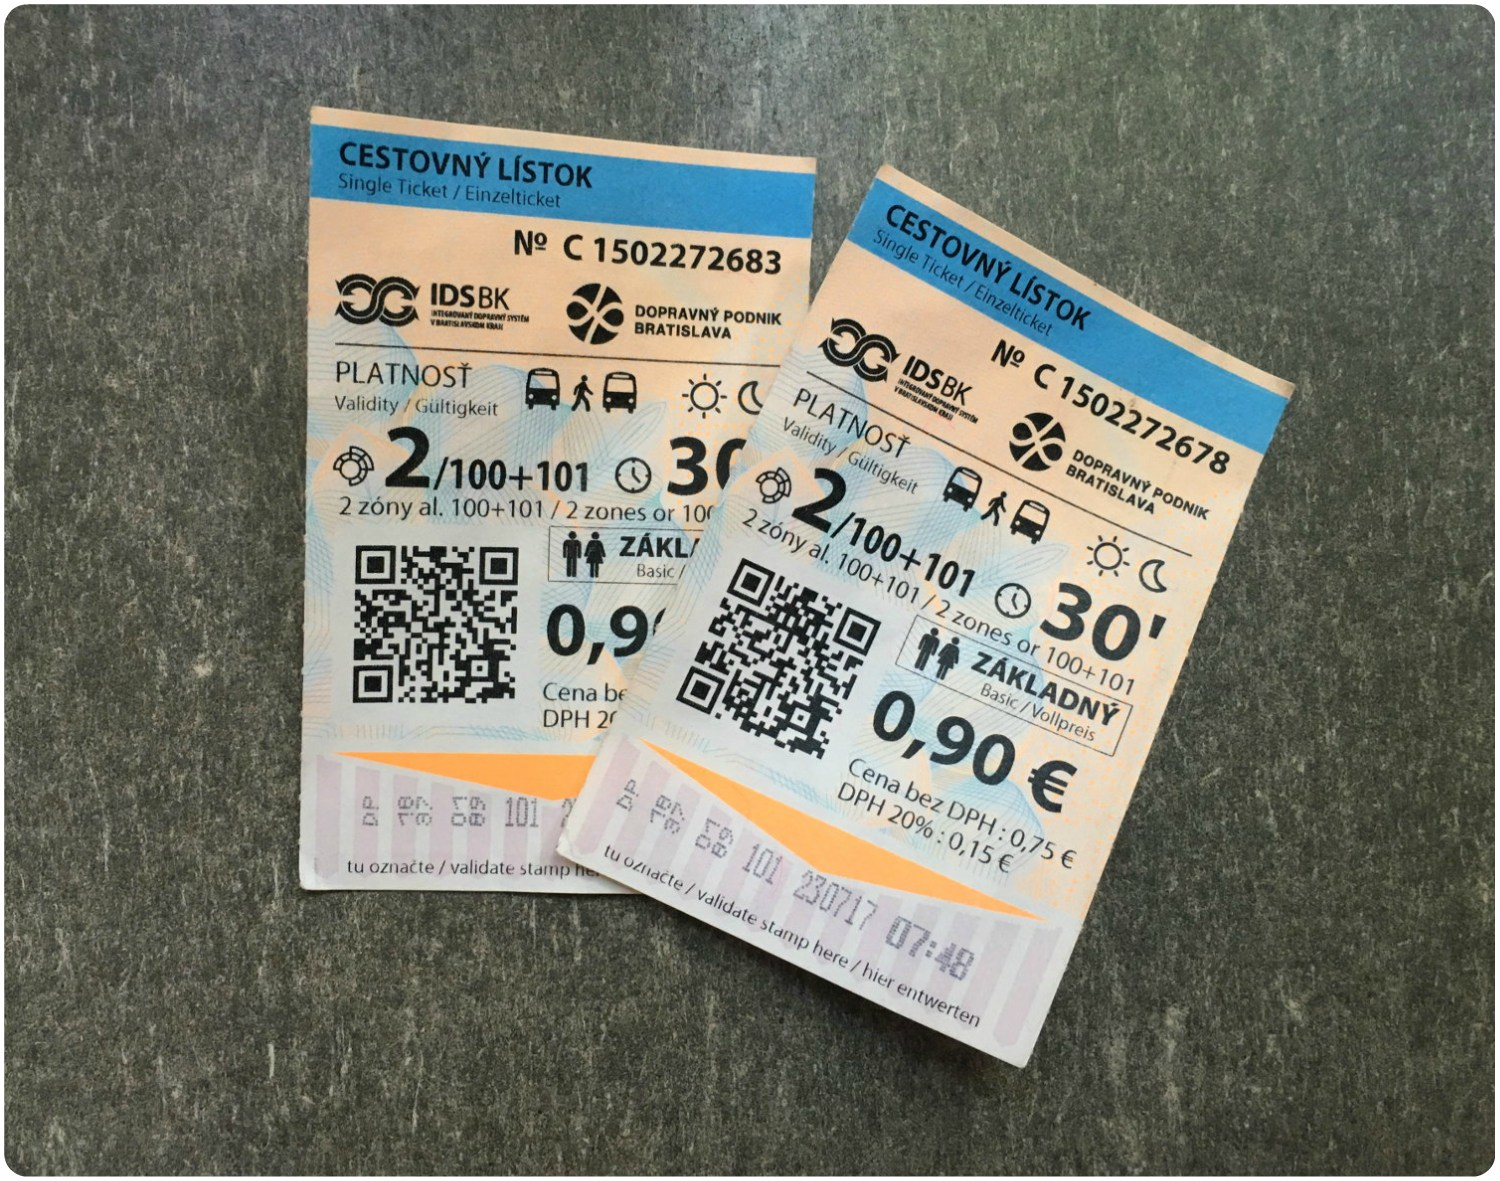 Our Bratislava Single Journey Tickets. Look closely and you can see the validation stamp beneath the orange arrow, which indicates the direction to insert the ticket into the validating machine.